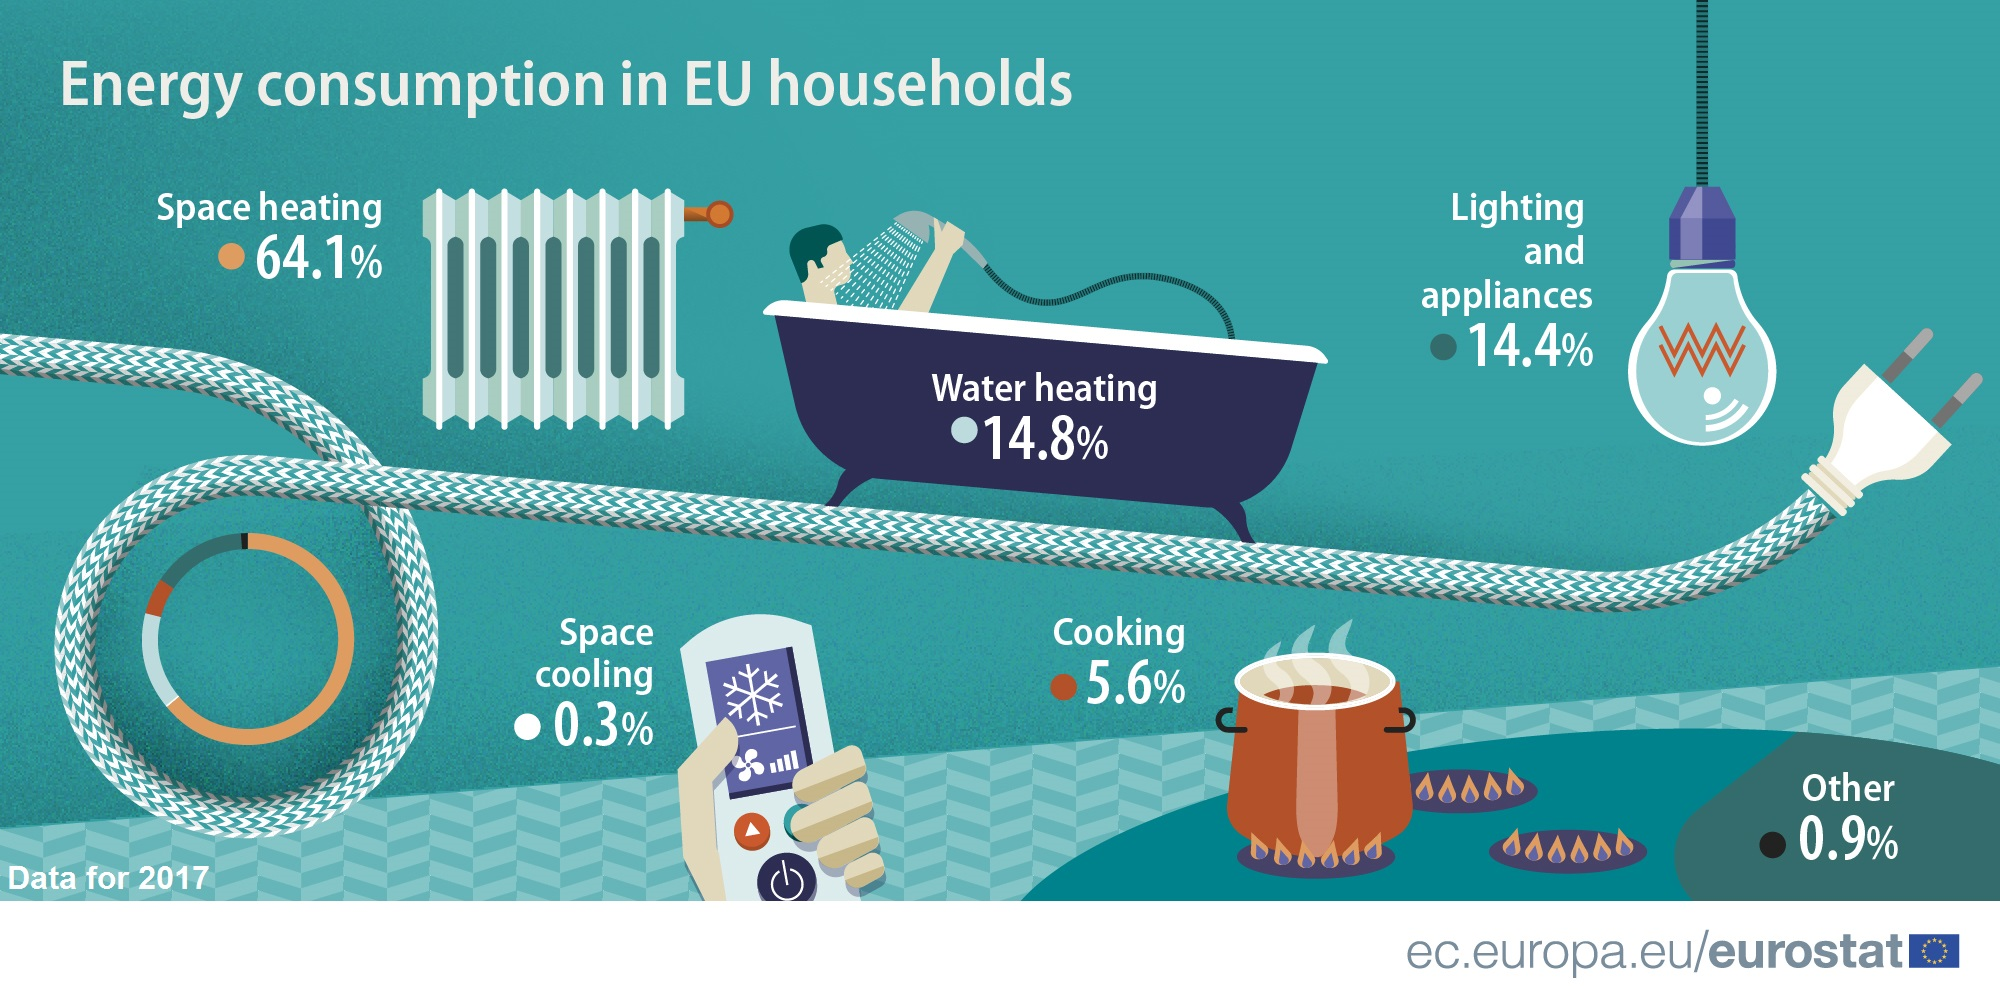 Infographic showing energy consumption in EU households for 2017